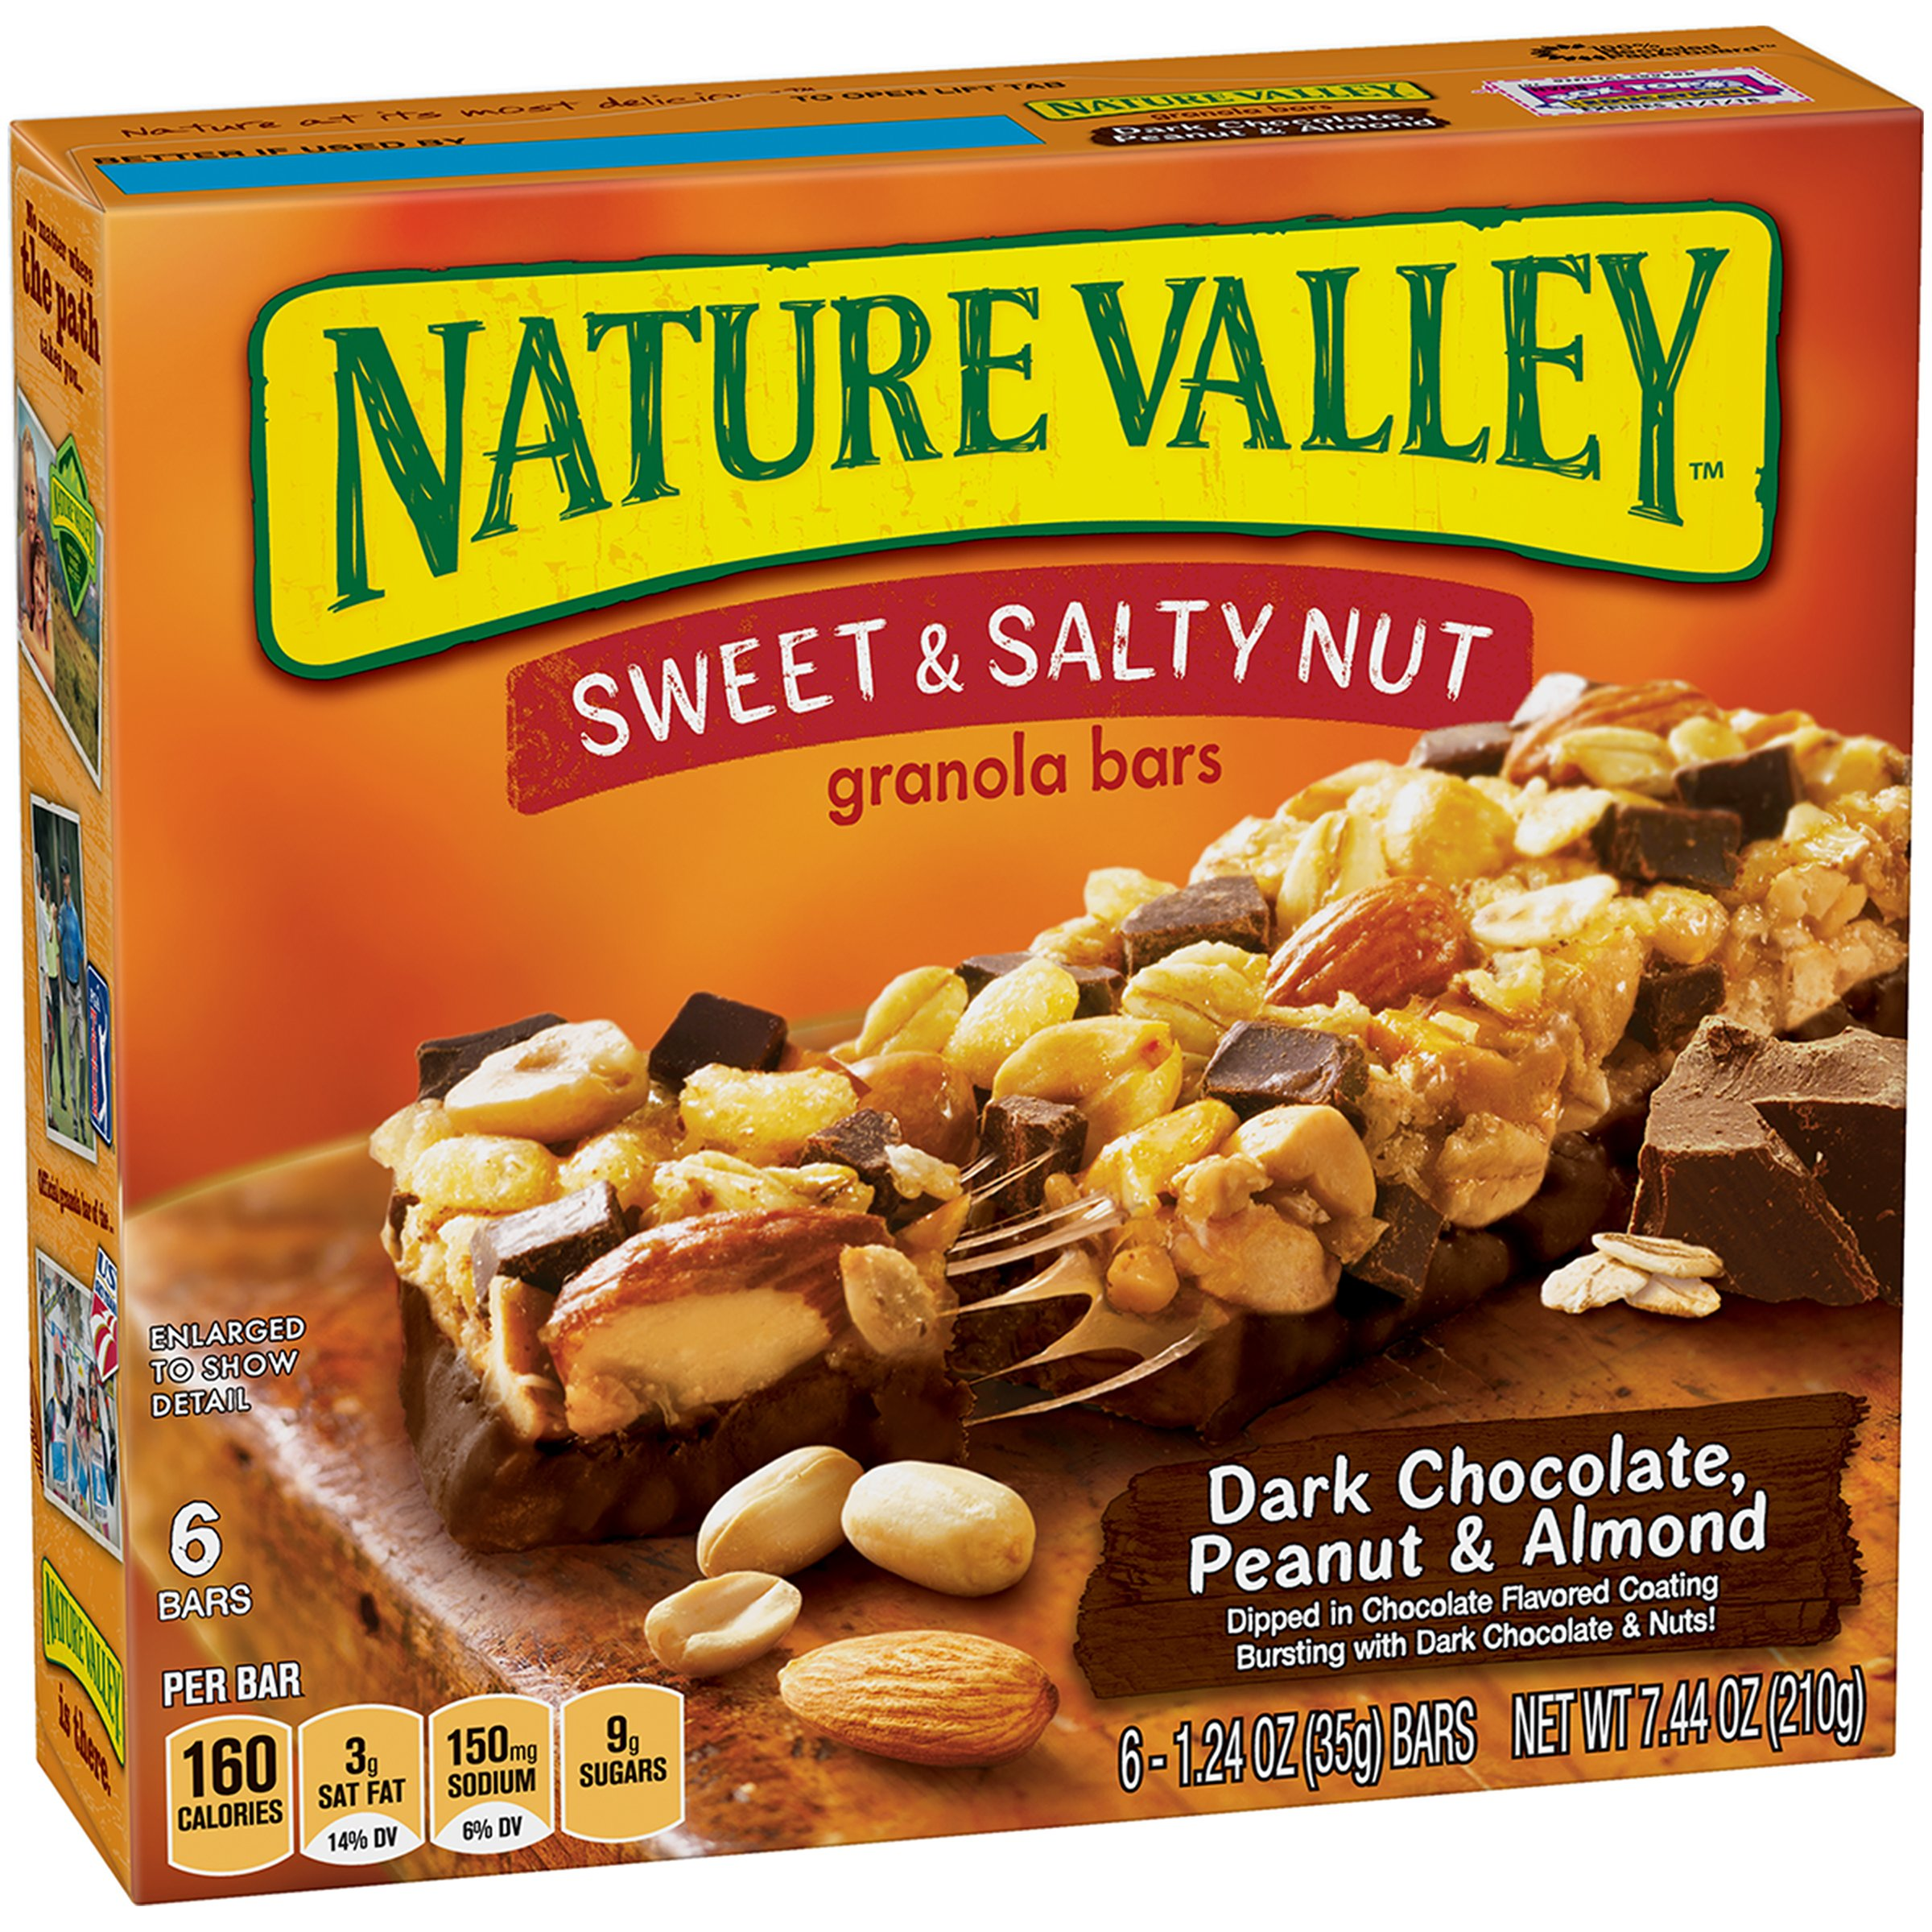 Nature valley granola bars sweet and salty nut cashew 6 bars nature valley granola bars sweet and salty nut dark chocolate peanut almond ccuart Gallery